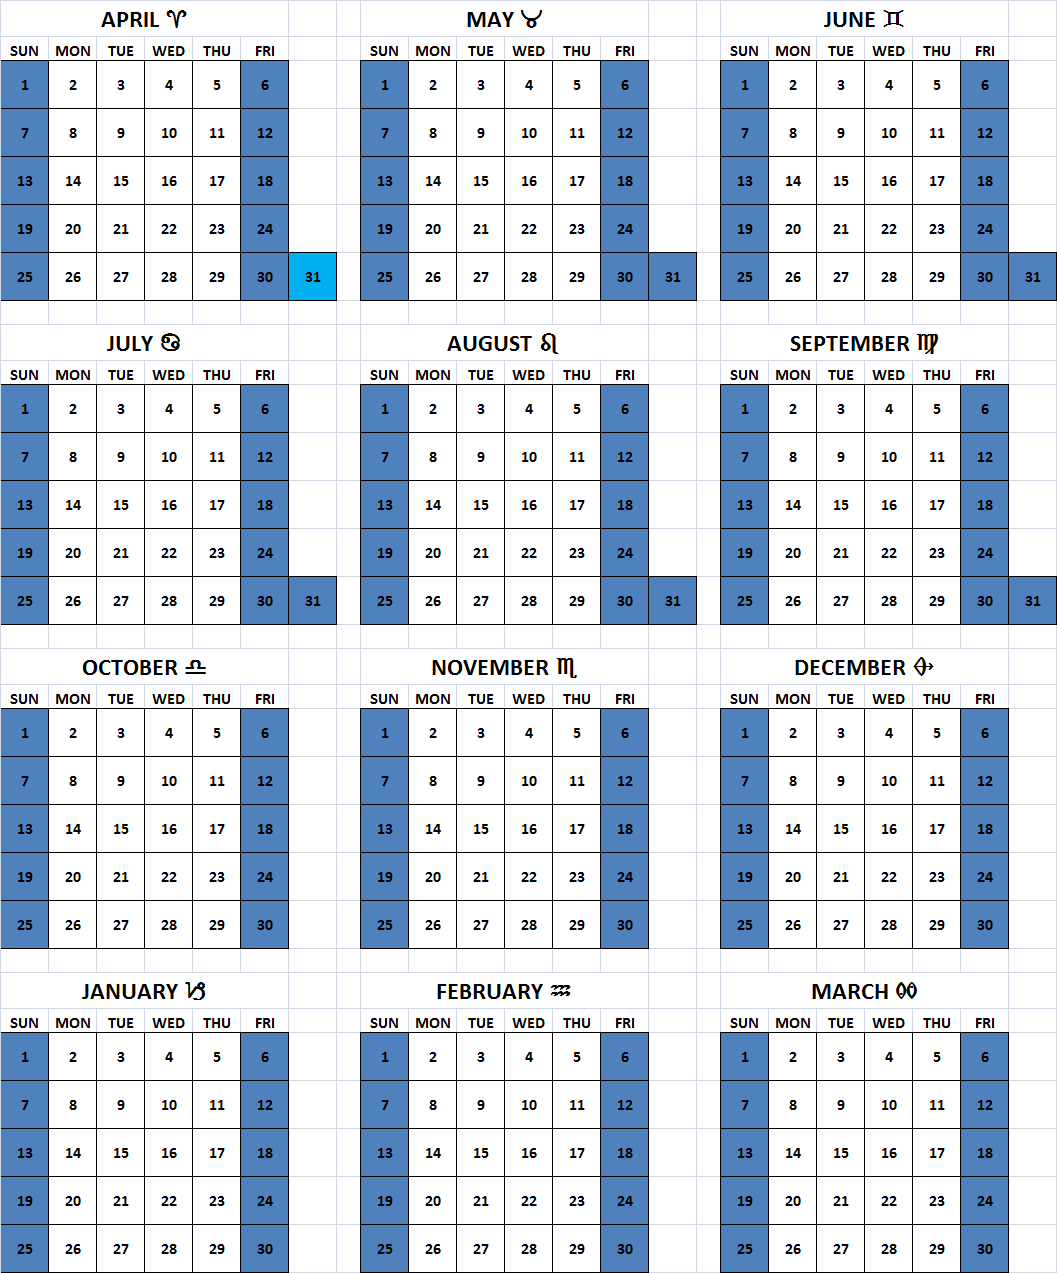 Total 2019 Calendar Year Working Days With 6 Day Week Solar Common Muslim Christian Weekend